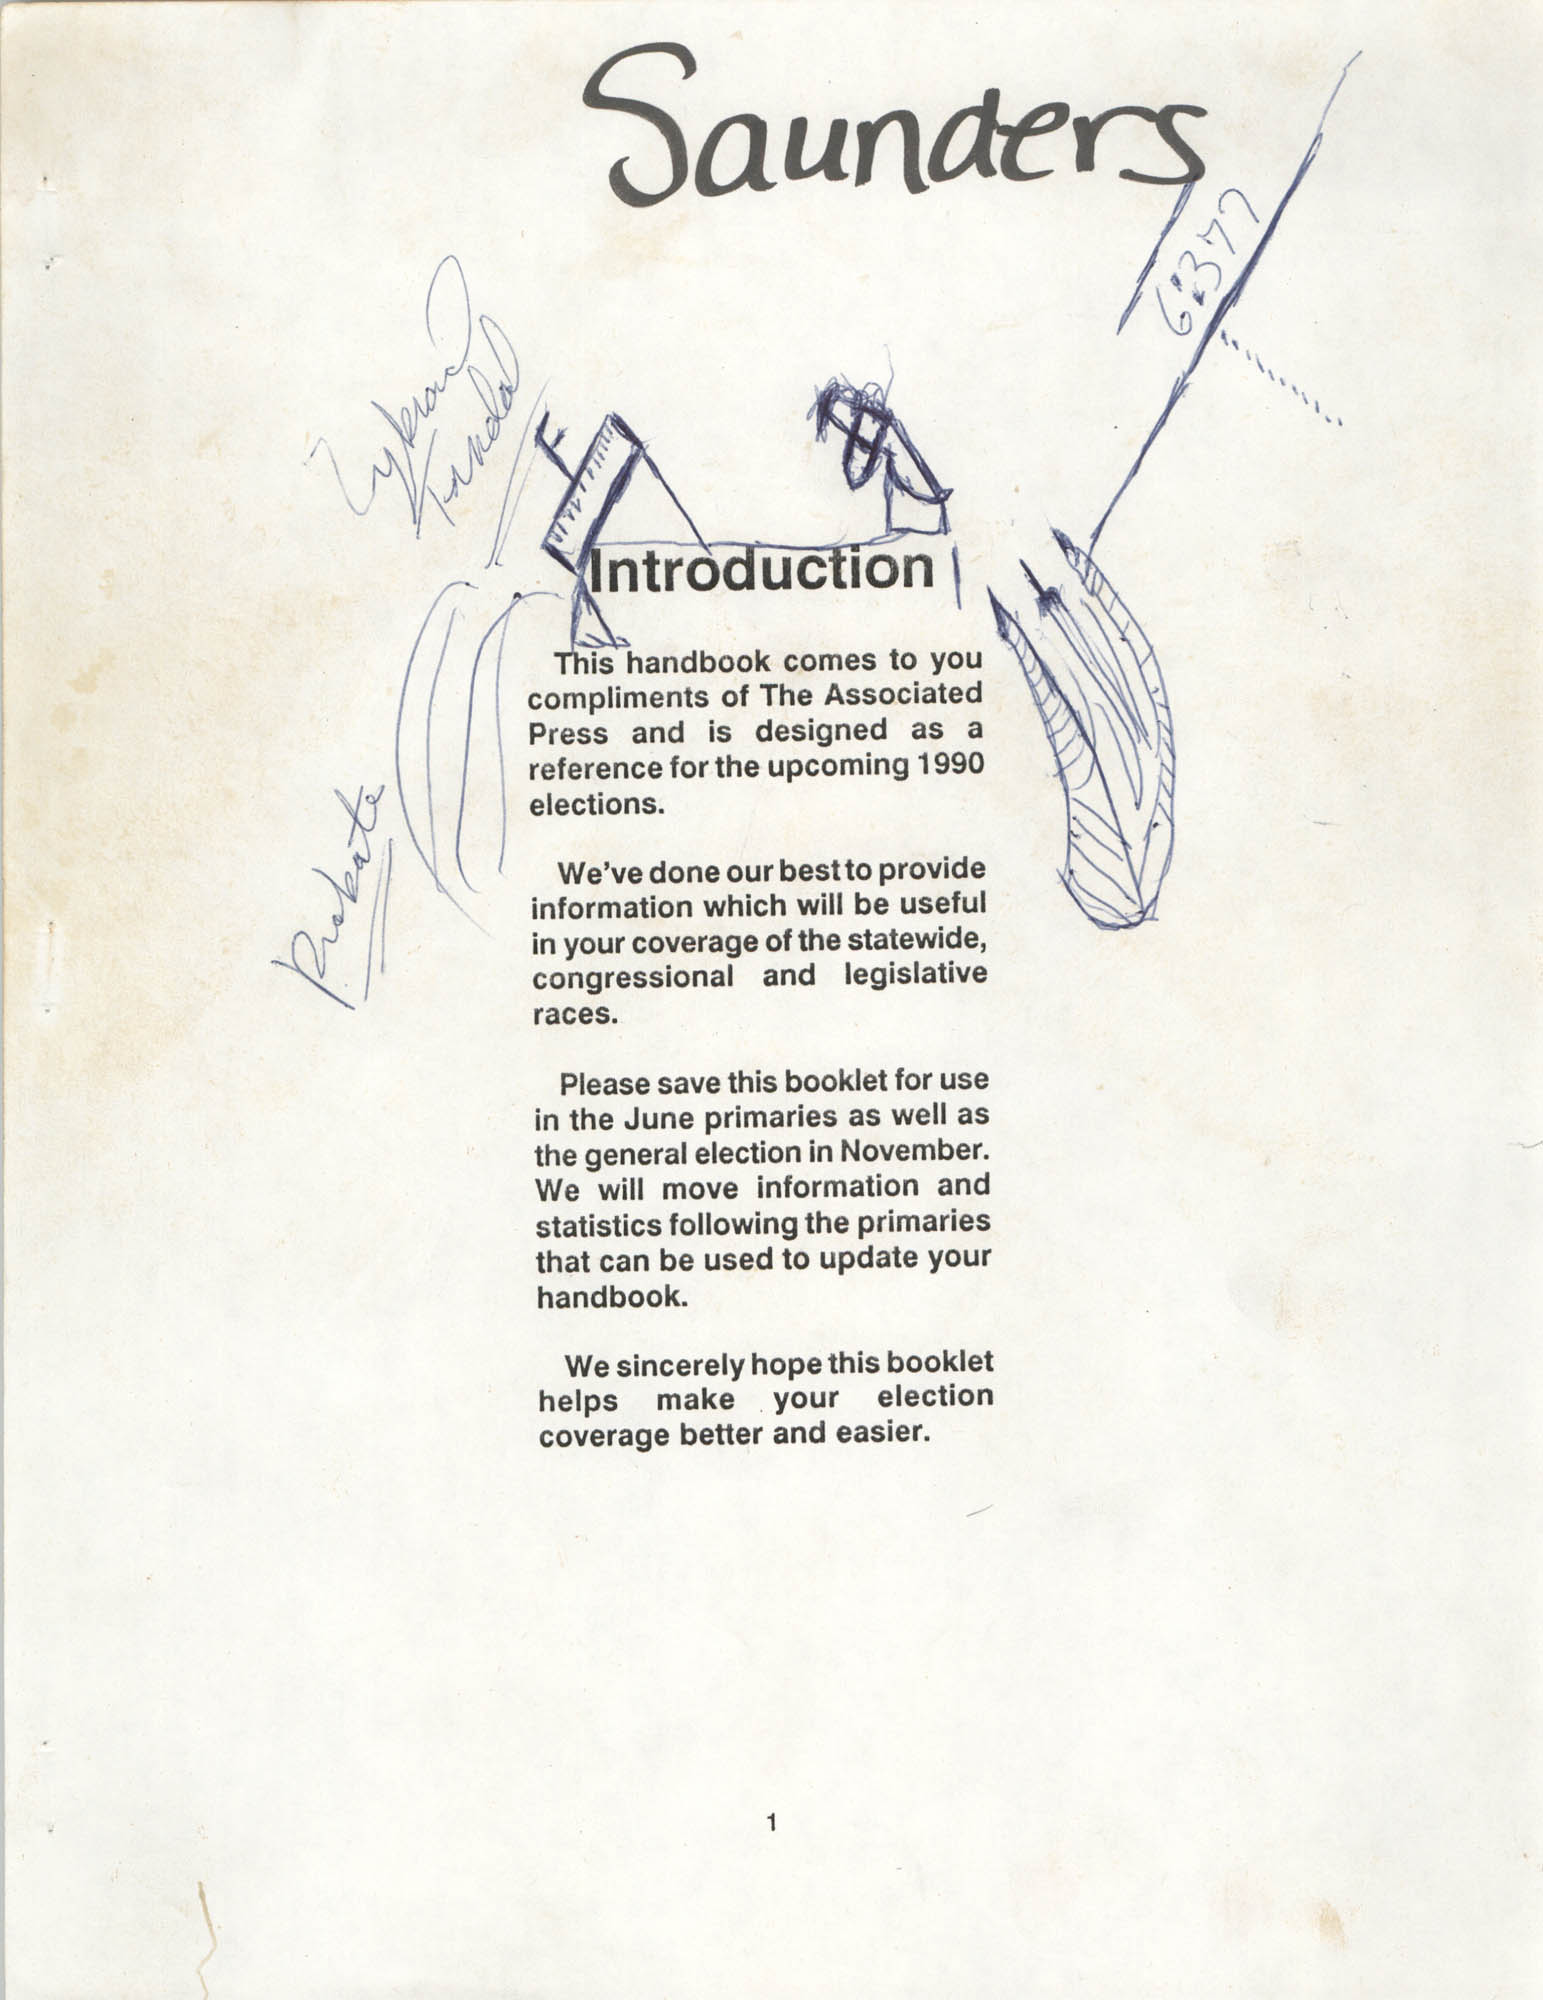 1990 Elections Handbook, Introduction